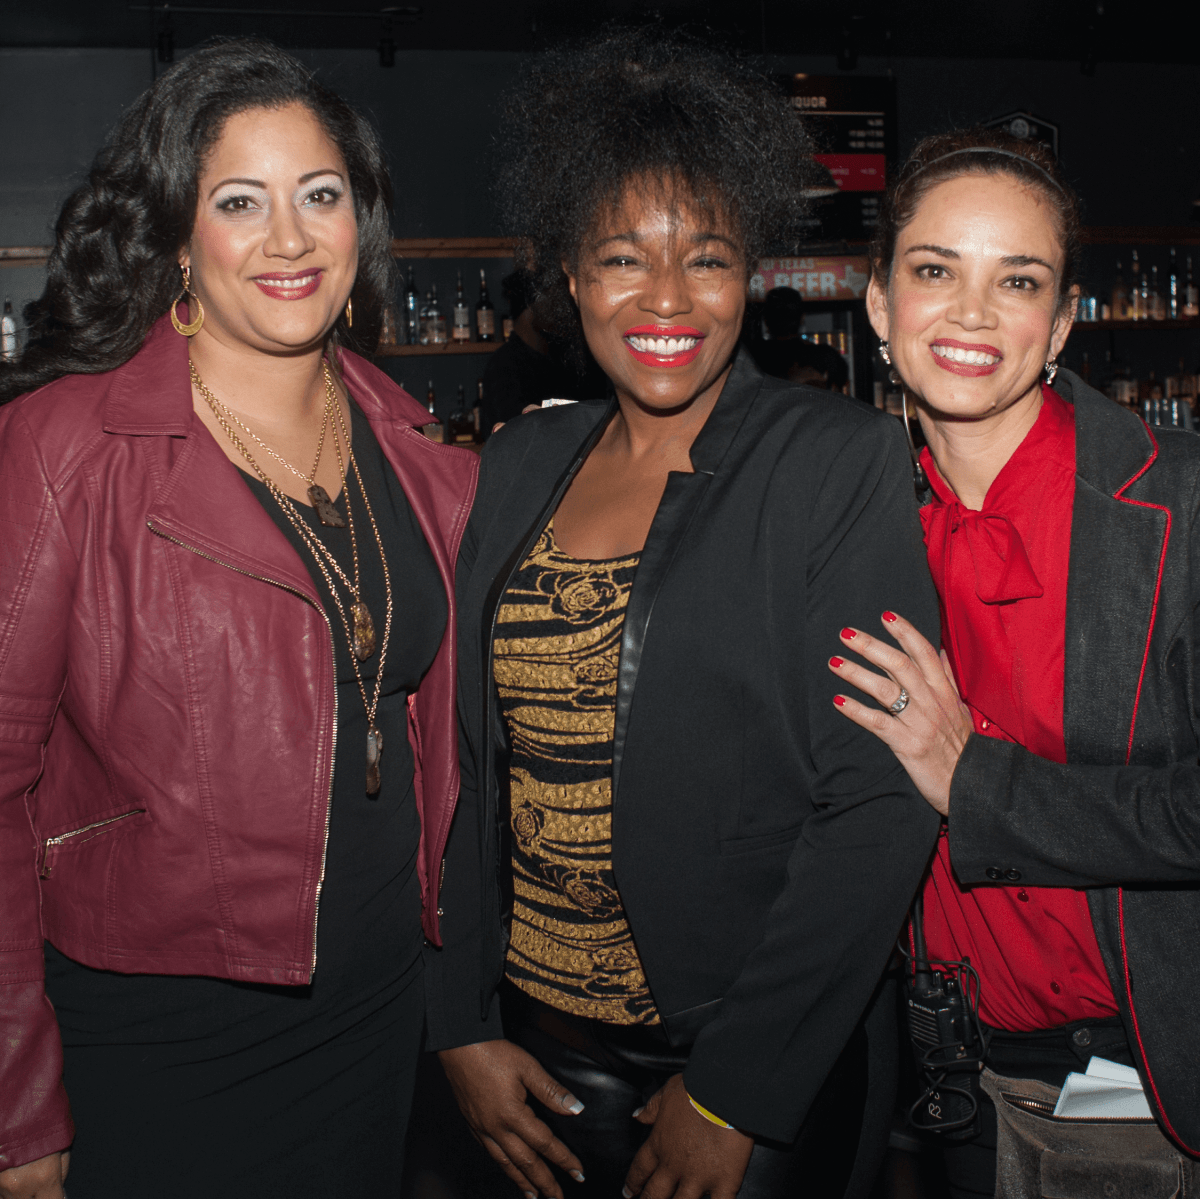 Sims Foundation Heart of the City 2016 Lauren Cervantes Angela Miller Celeste Quesada